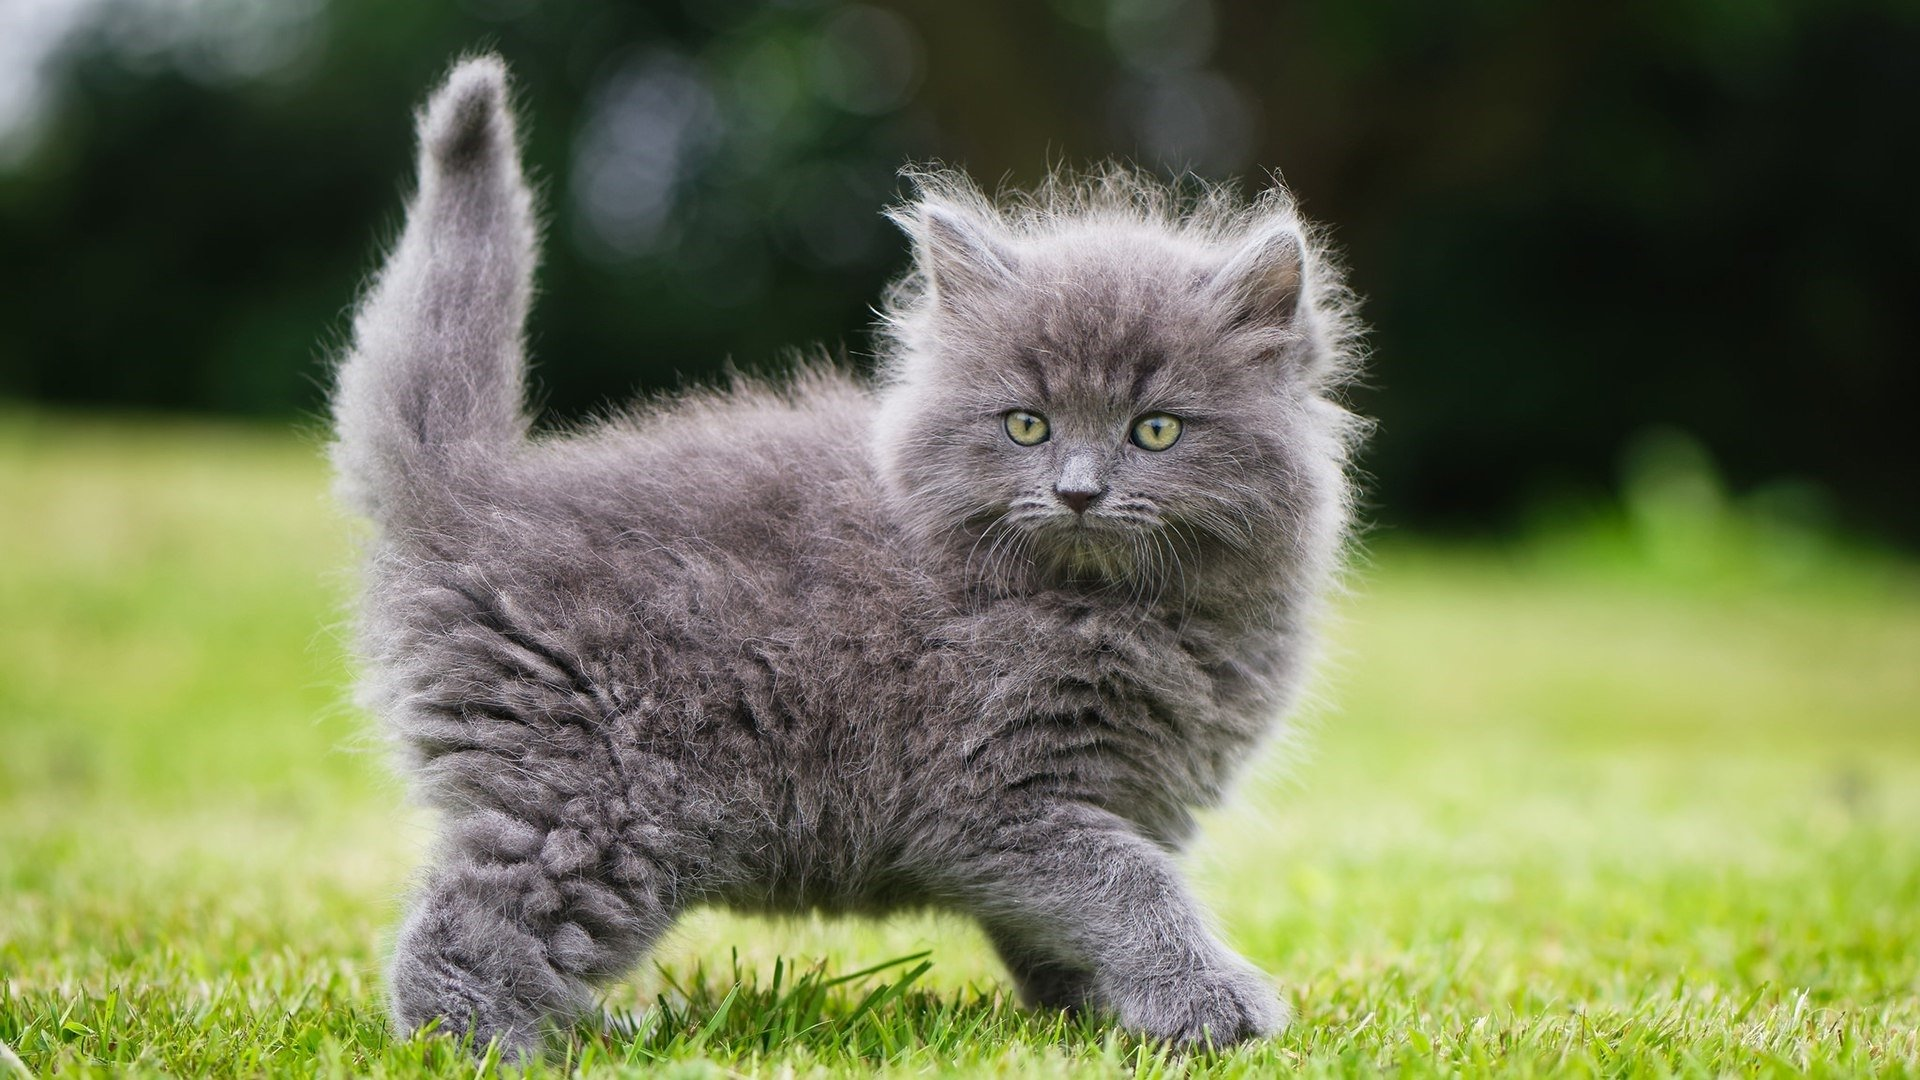 Gray Fluffy Kitten Hd Wallpaper Background Image 1920x1080 Id 1000999 Wallpaper Abyss